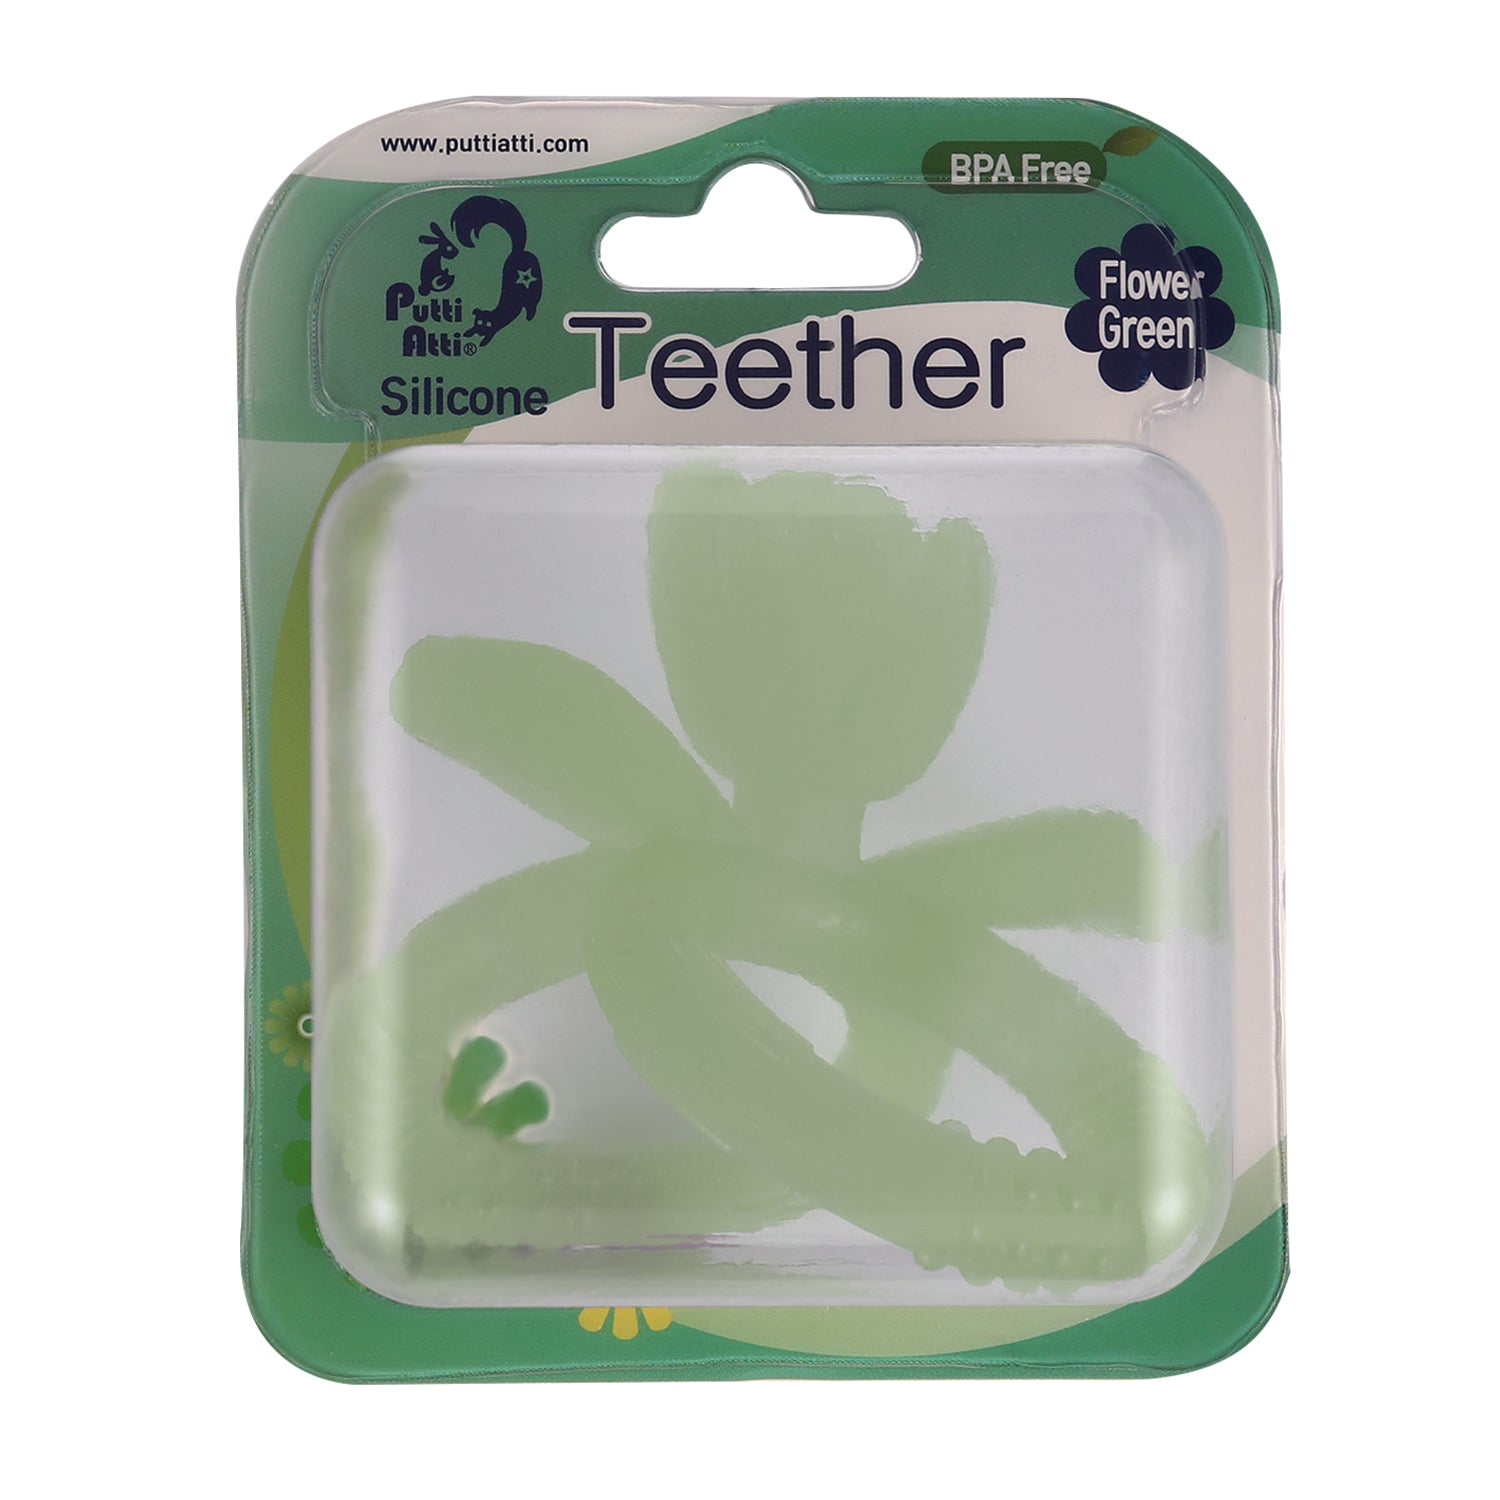 Teether (1ea/pack) Flower